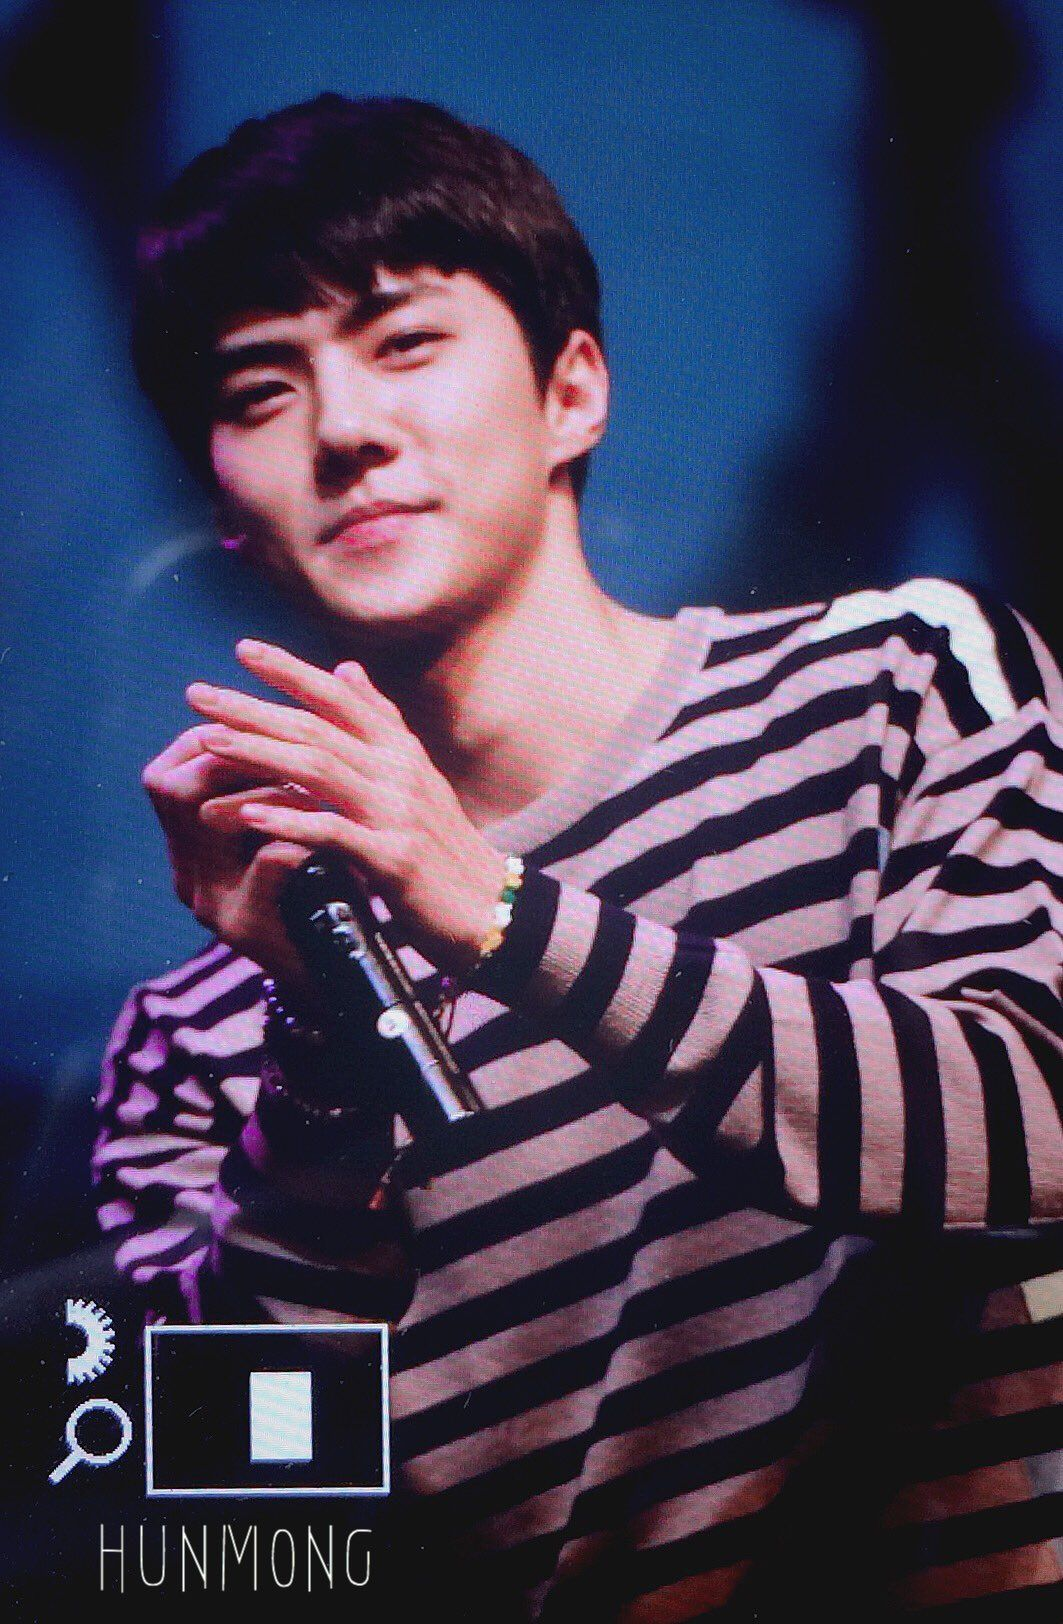 Sehun - 160703 EXO Fansign Event Credit: Hunmong